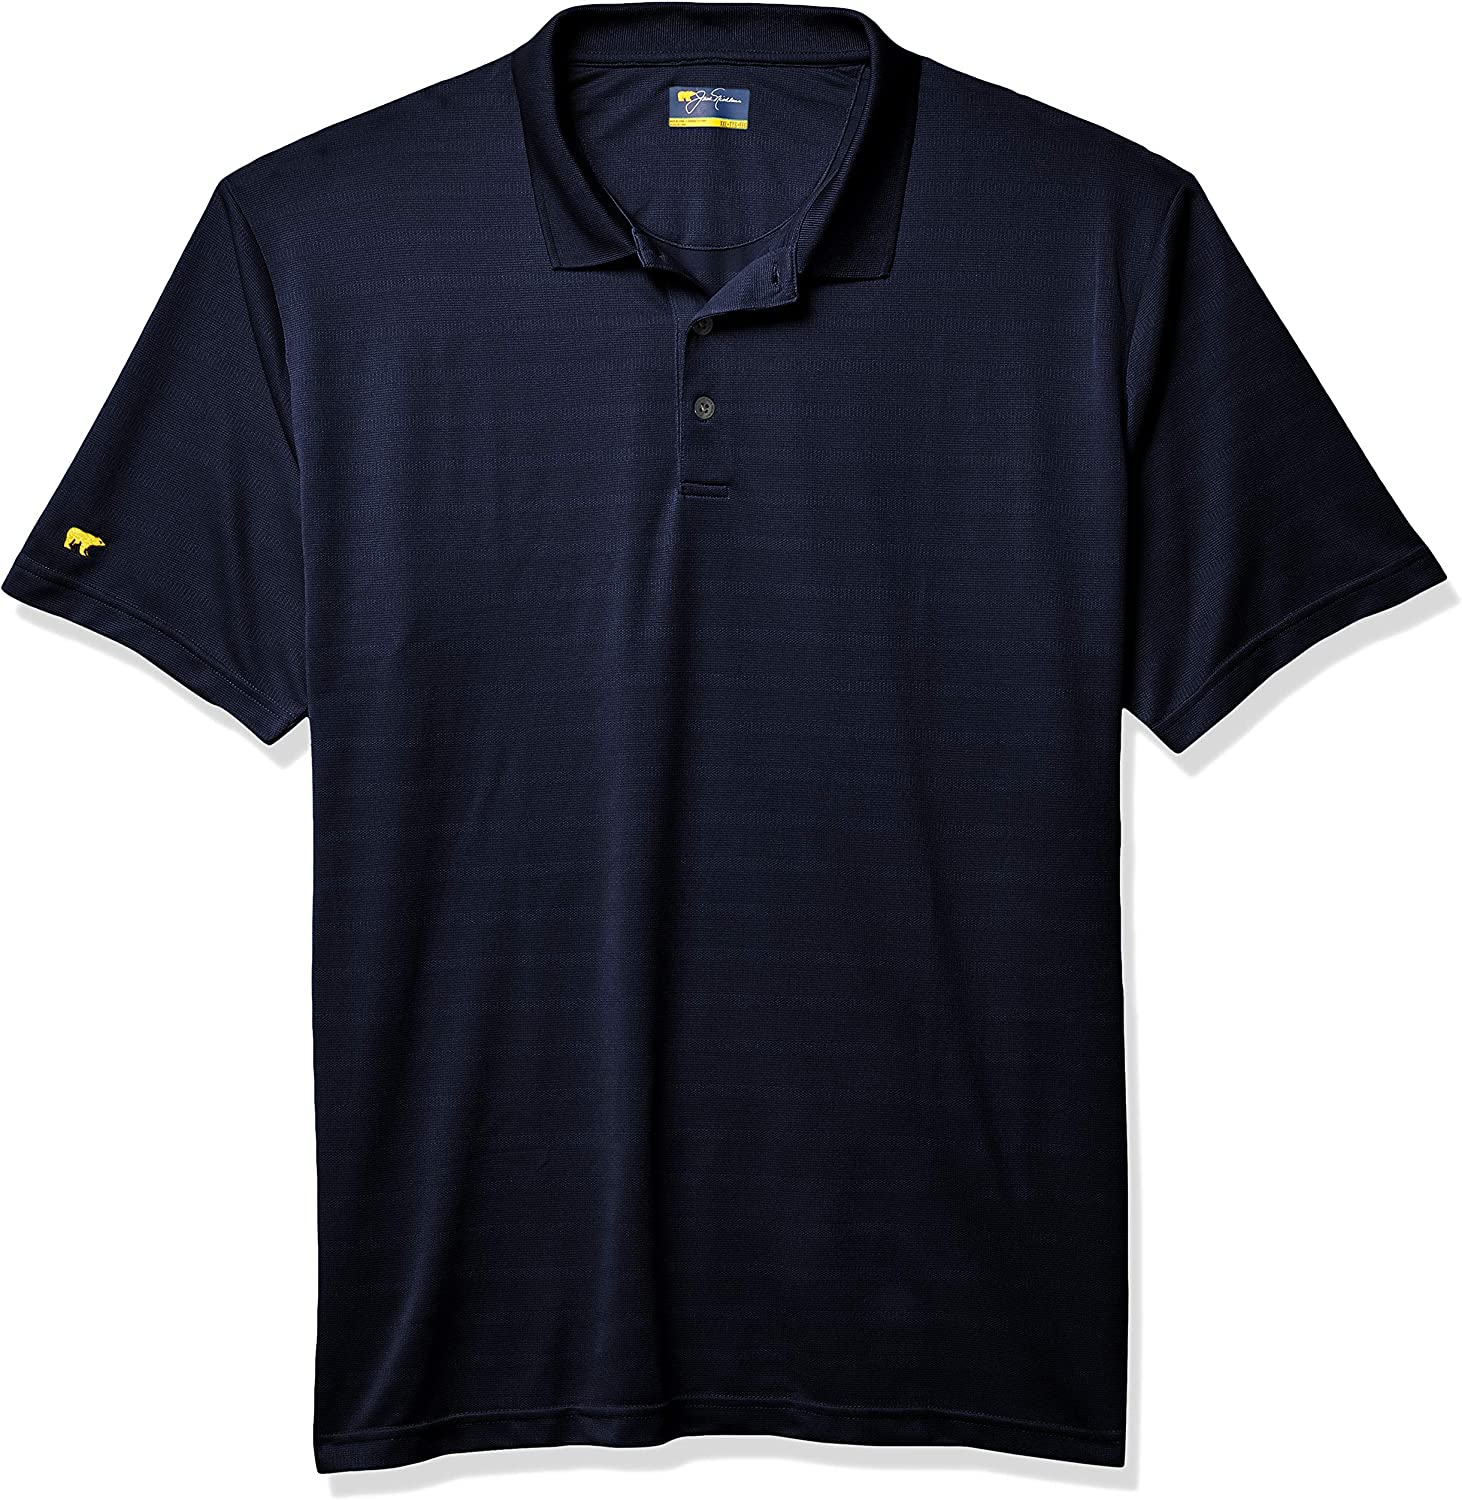 Jack Nicklaus Men's Shadow Luxury Shirt Textured New Free Shipping Polo Golf